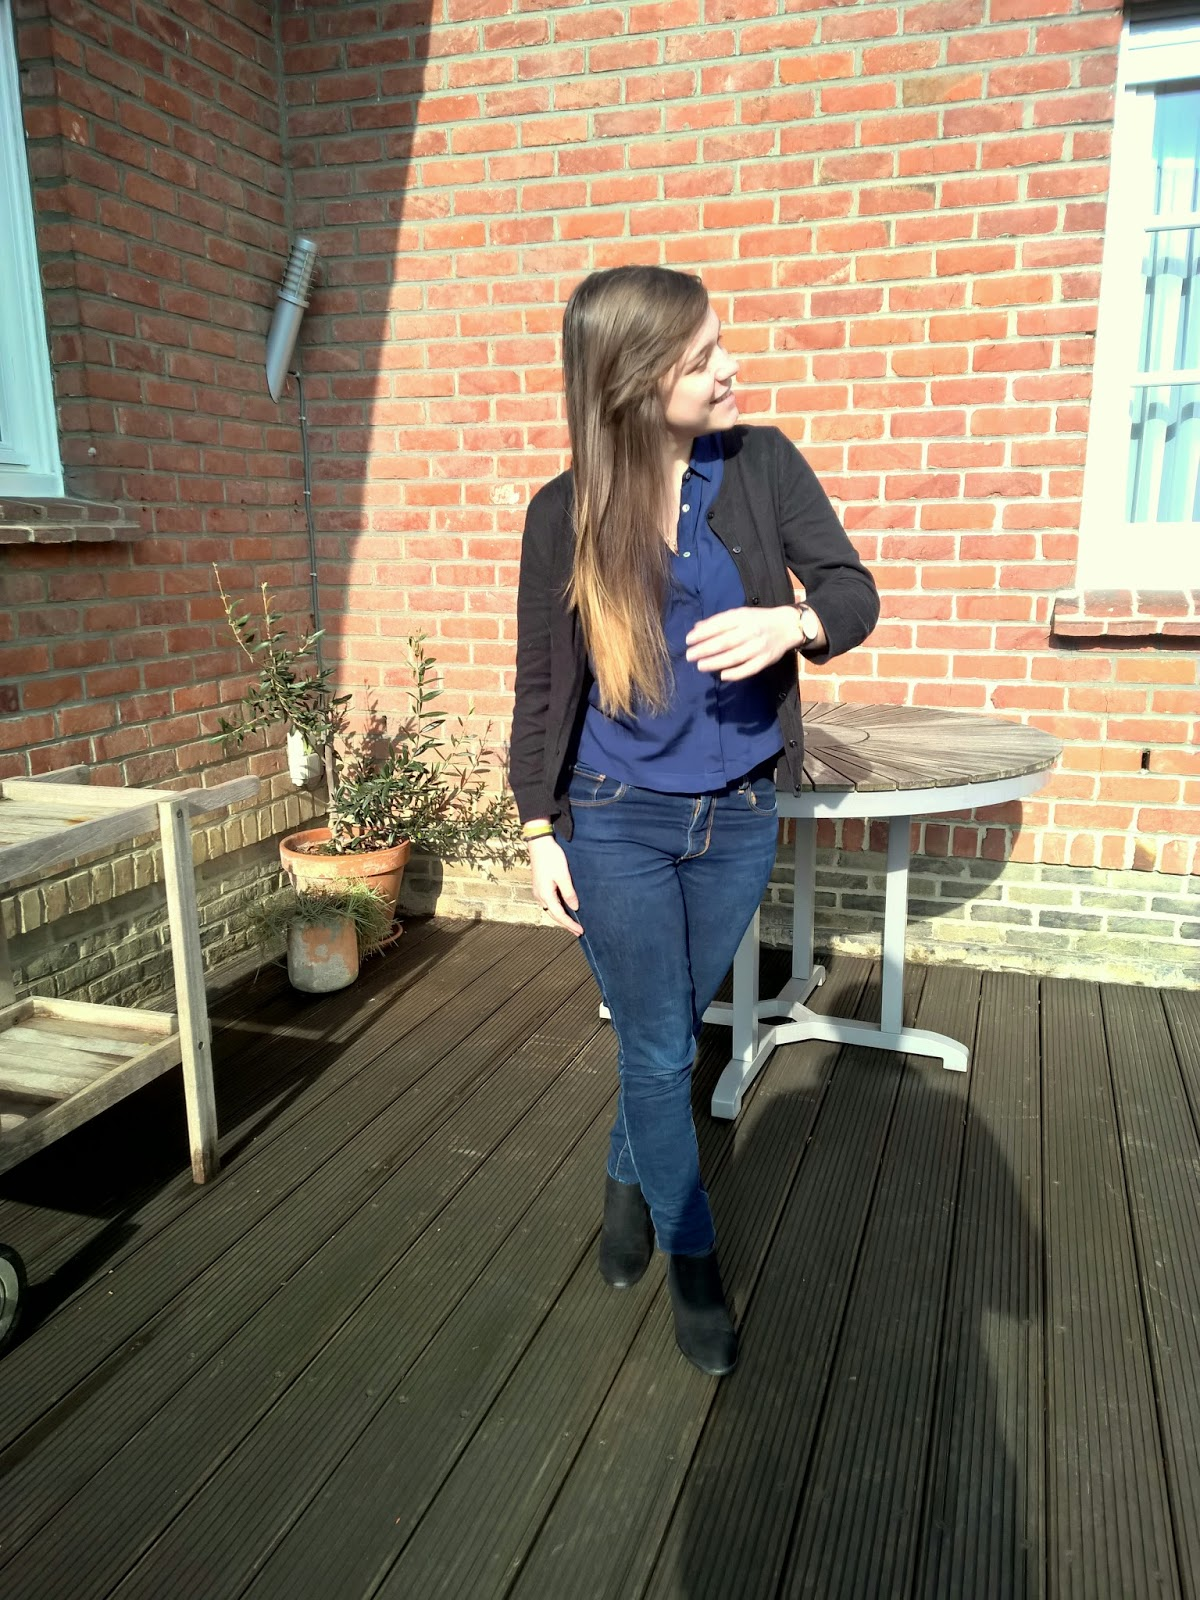 Clothes & Dreams: OOTD: Shirt-Jeans-New Shoes Combo: Forever 21 shirt, H&M Black Cardigan, Levi's Jeans, Pull & Bear shoes